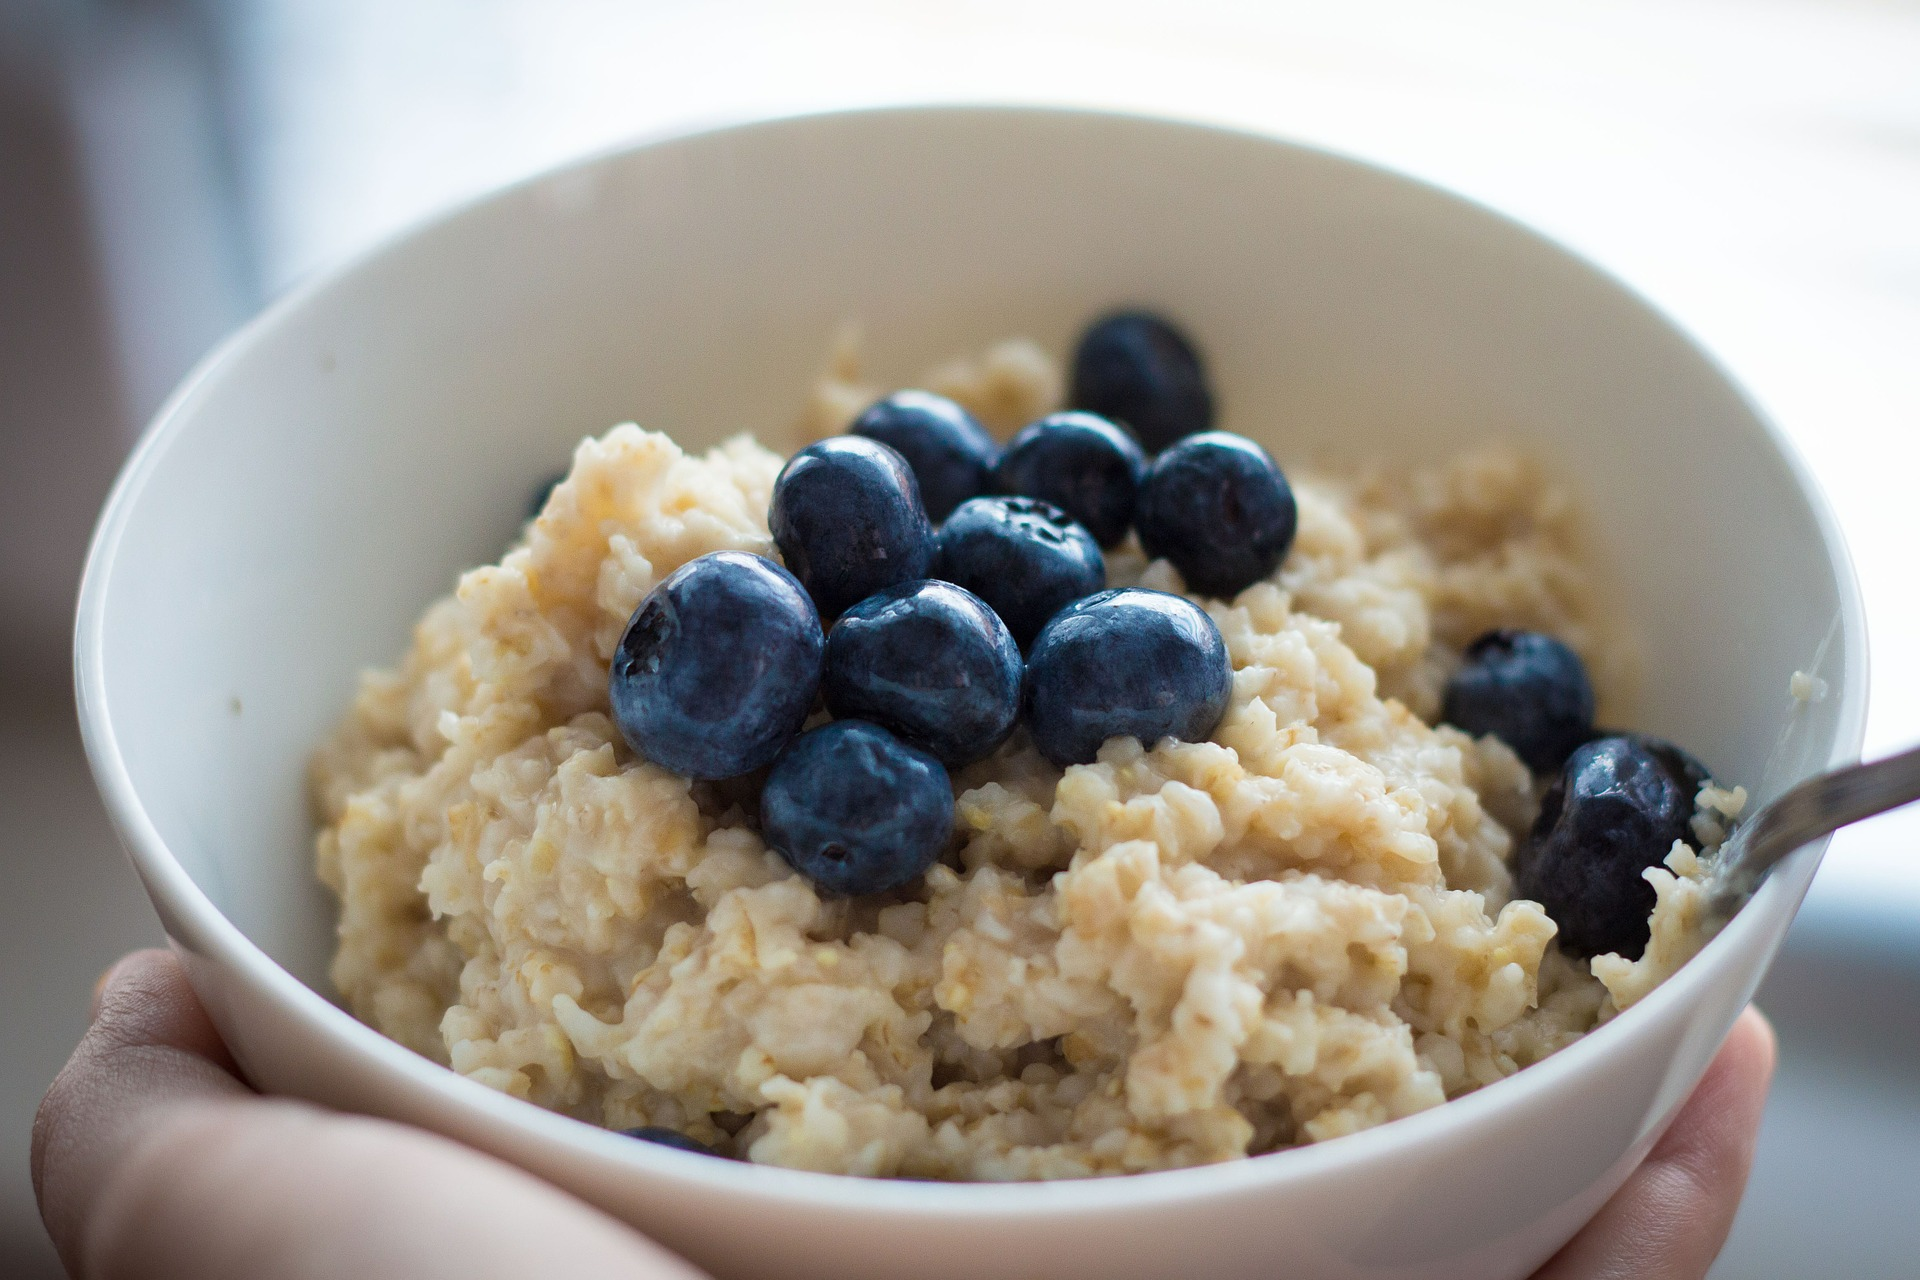 Oatmeal is great for boosts of energy and endurance during a race.